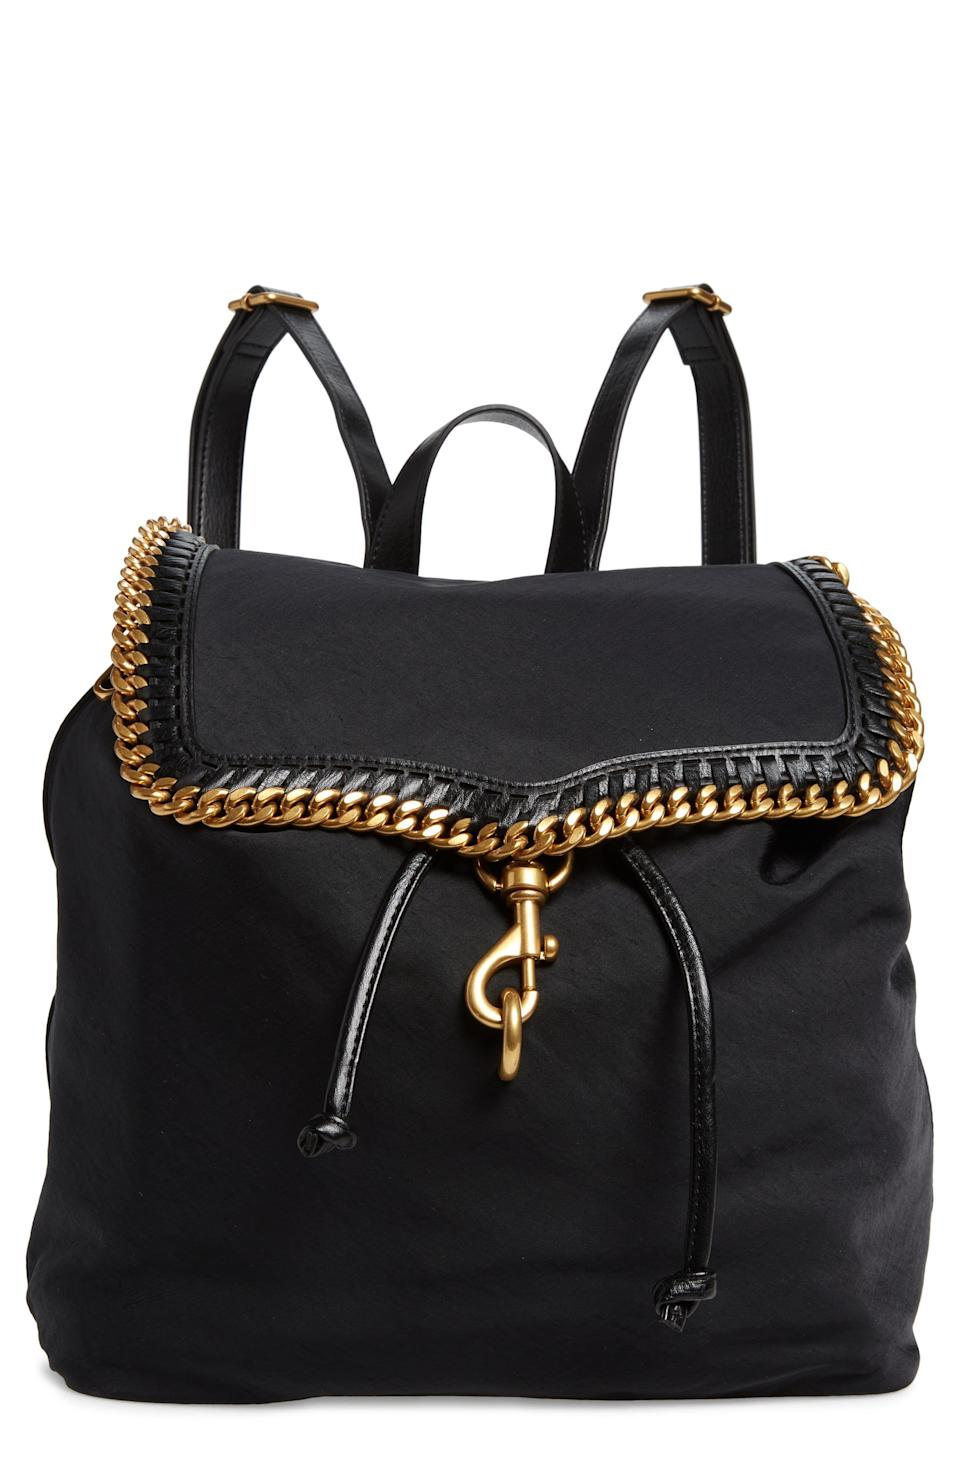 """<p><strong>Rebecca Minkoff</strong></p><p>nordstrom.com</p><p><strong>$136.80</strong></p><p><a href=""""https://go.redirectingat.com?id=74968X1596630&url=https%3A%2F%2Fwww.nordstrom.com%2Fs%2Frebecca-minkoff-woven-chain-backpack%2F5904857&sref=https%3A%2F%2Fwww.elle.com%2Ffashion%2Fshopping%2Fg37873182%2Fnordstrom-fall-clothing-sale%2F"""" rel=""""nofollow noopener"""" target=""""_blank"""" data-ylk=""""slk:Shop Now"""" class=""""link rapid-noclick-resp"""">Shop Now</a></p><p>For those days when you need to haul your stuff around but want to look cute doing so, opt for this backpack. </p>"""